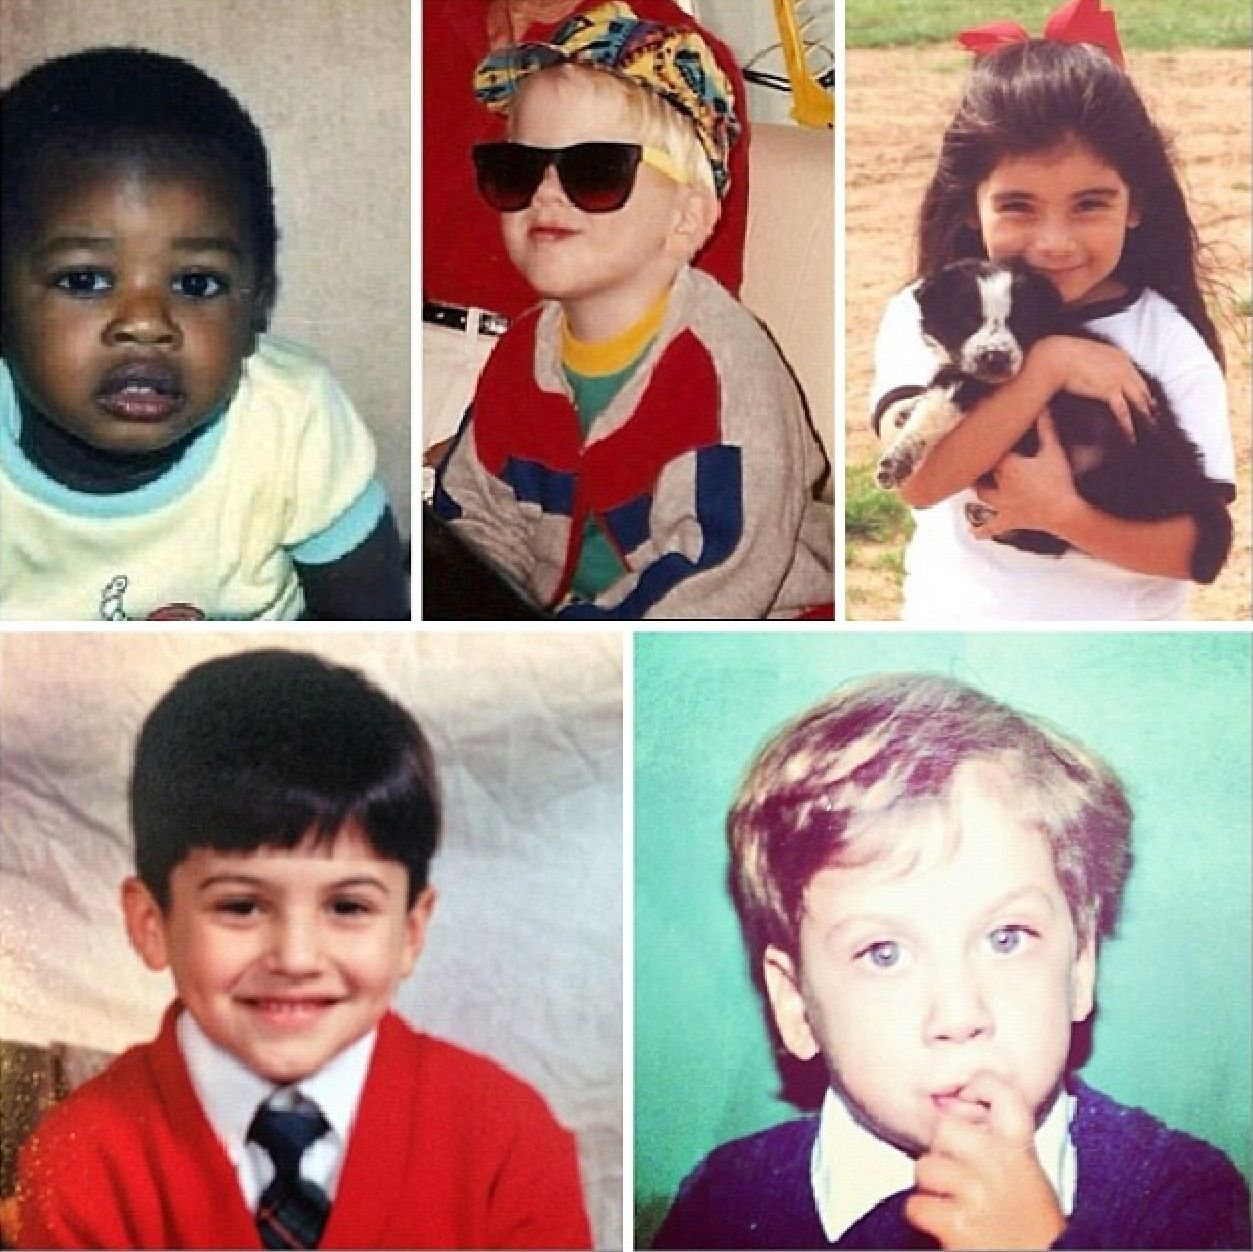 The five members of Pentatonix when they were younger  (Kevin, Scott